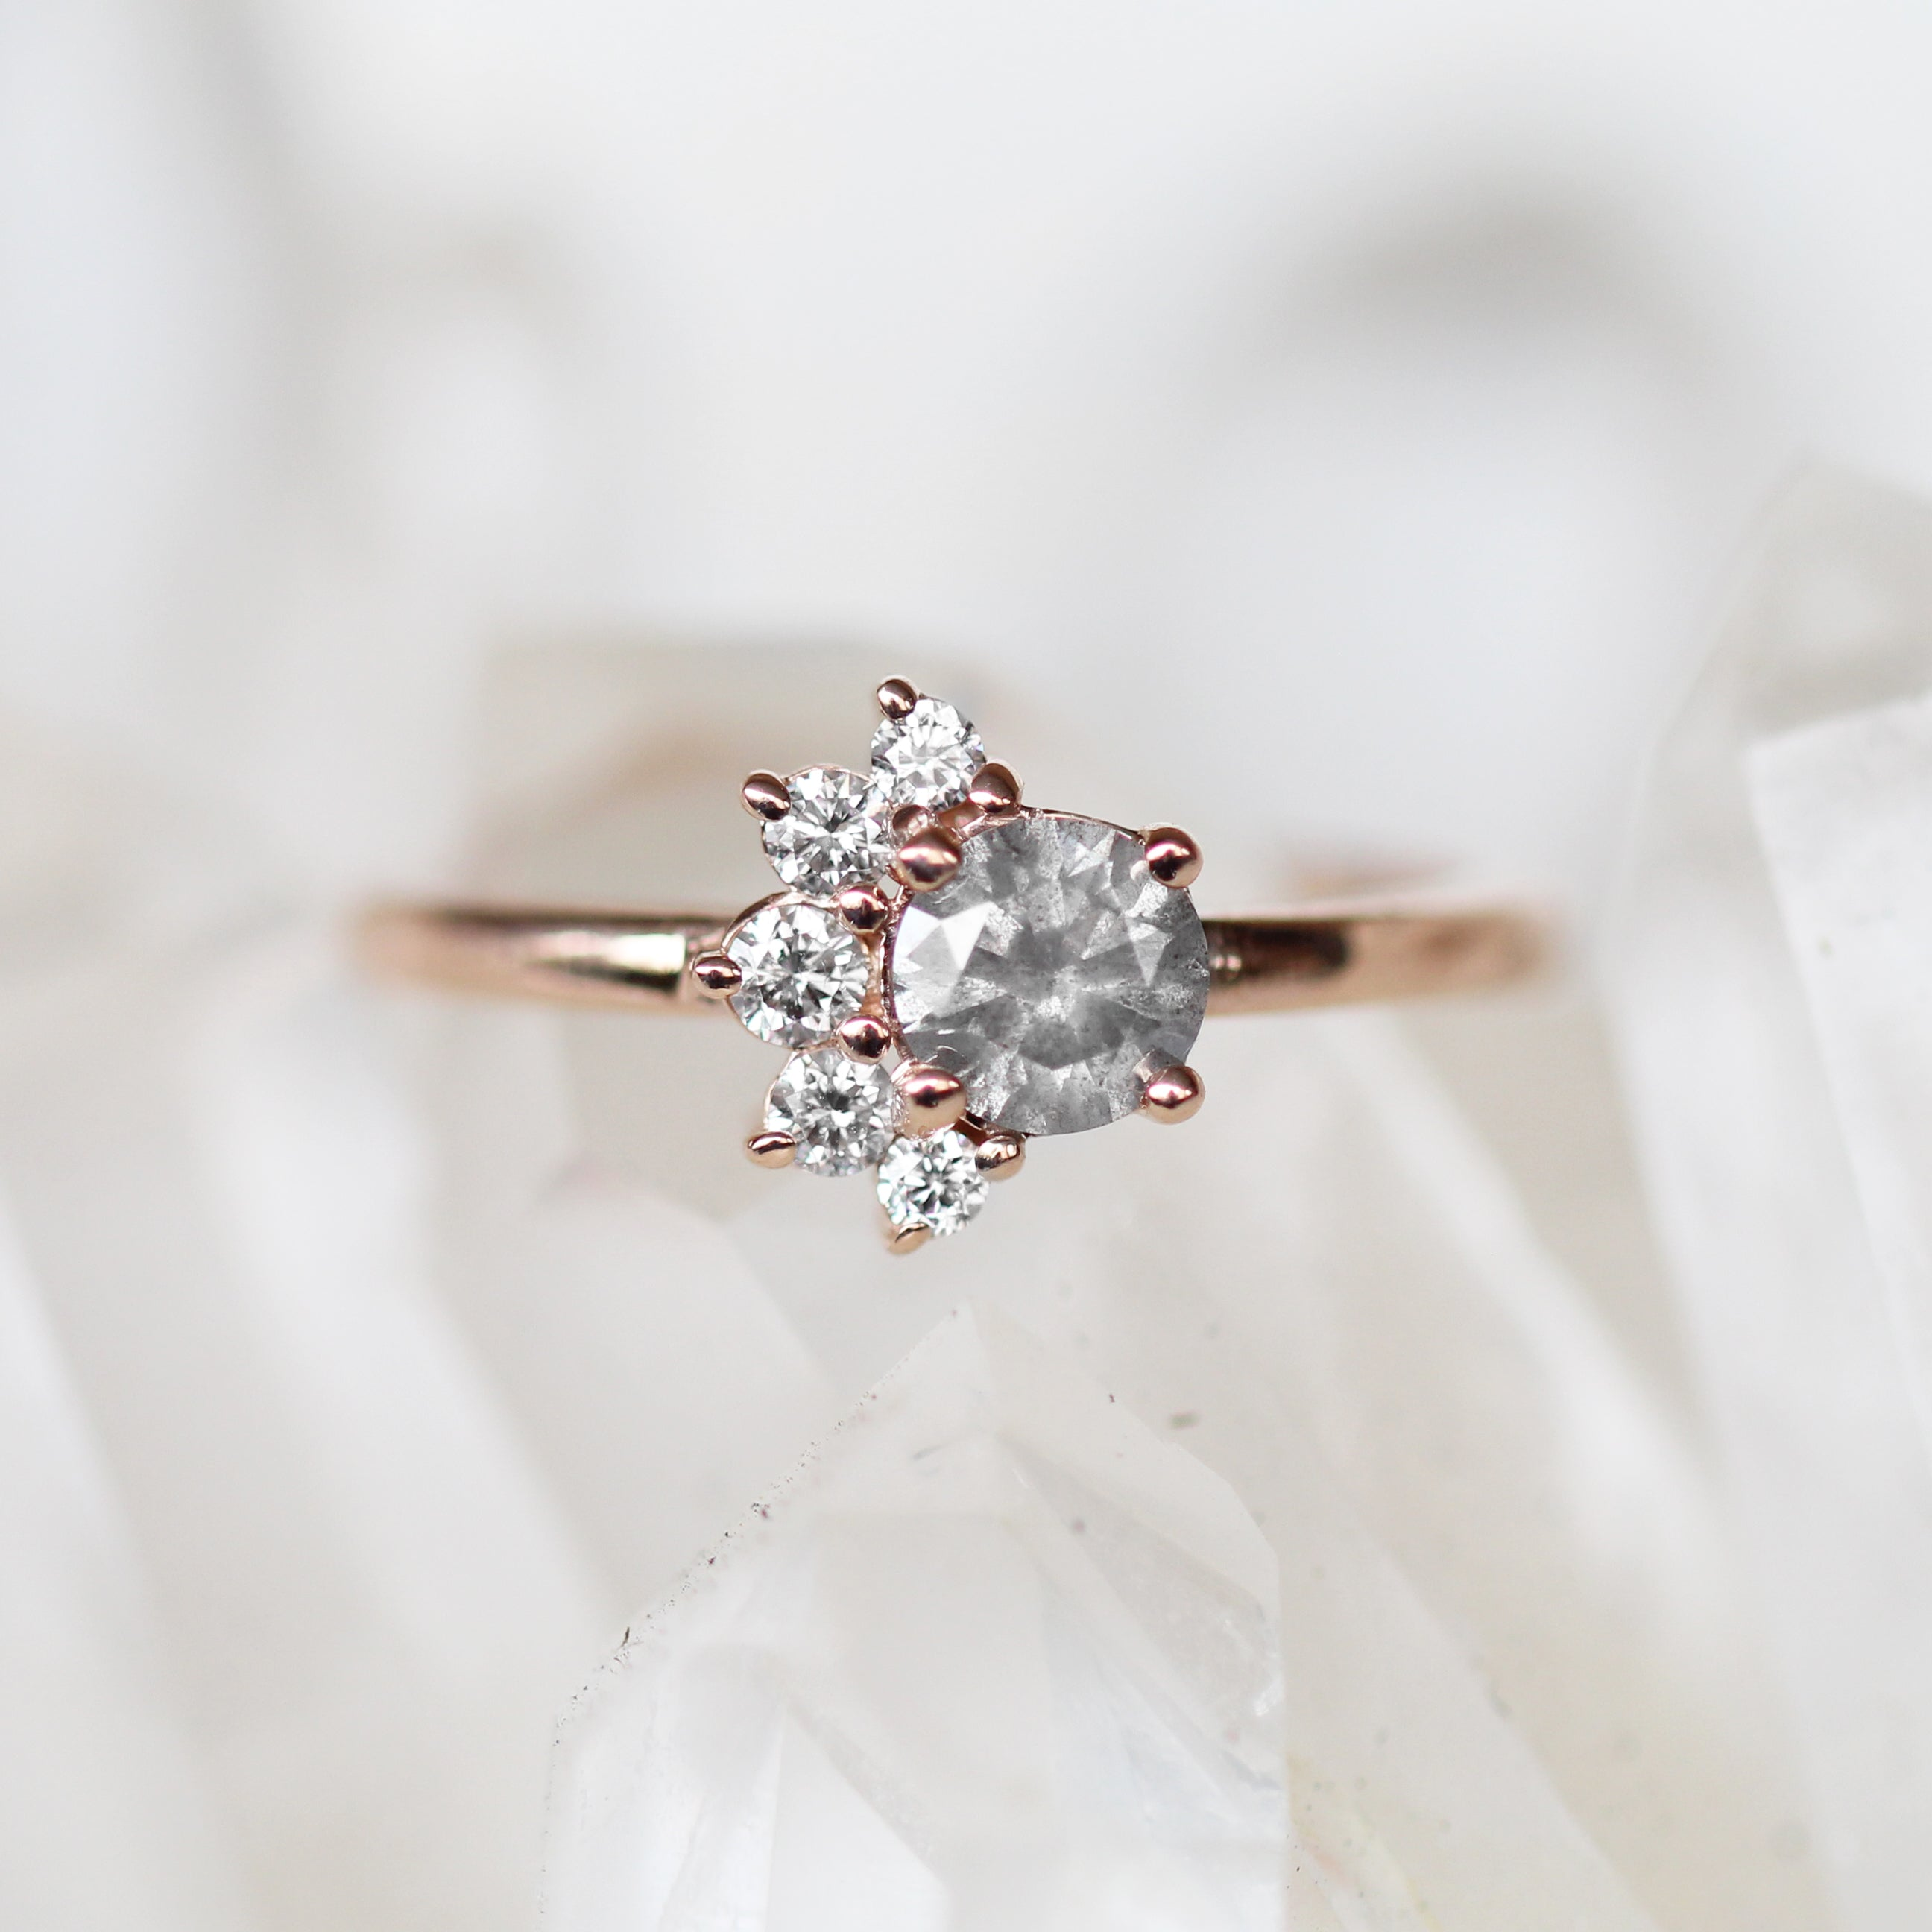 Drew Ring with a .68ct Celestial Diamond® in 10k Rose Gold - Ready to Size and Ship - Celestial Diamonds ® by Midwinter Co.